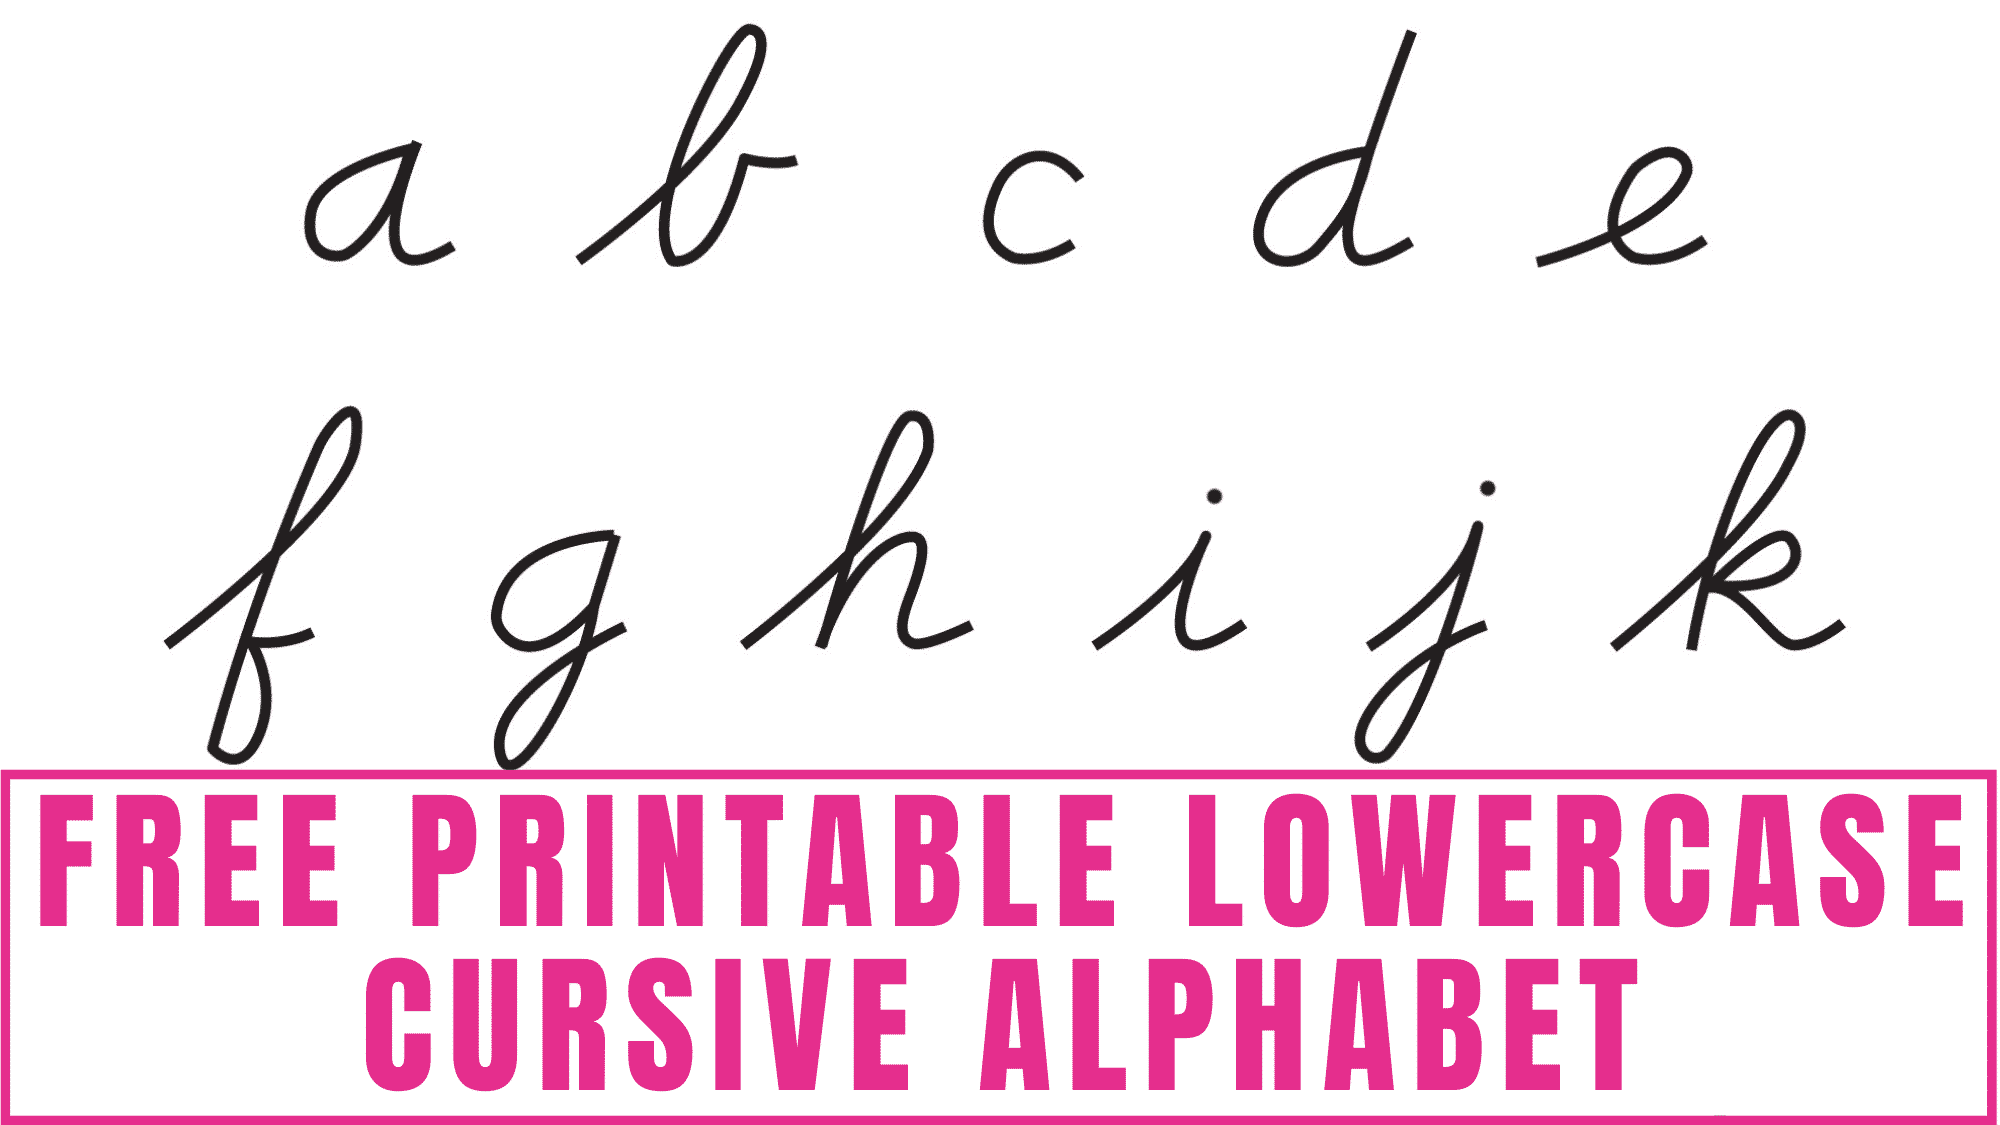 Writing lowercase cursive letters can be difficult but using this free printable lowercase cursive alphabet can make it much easiter.